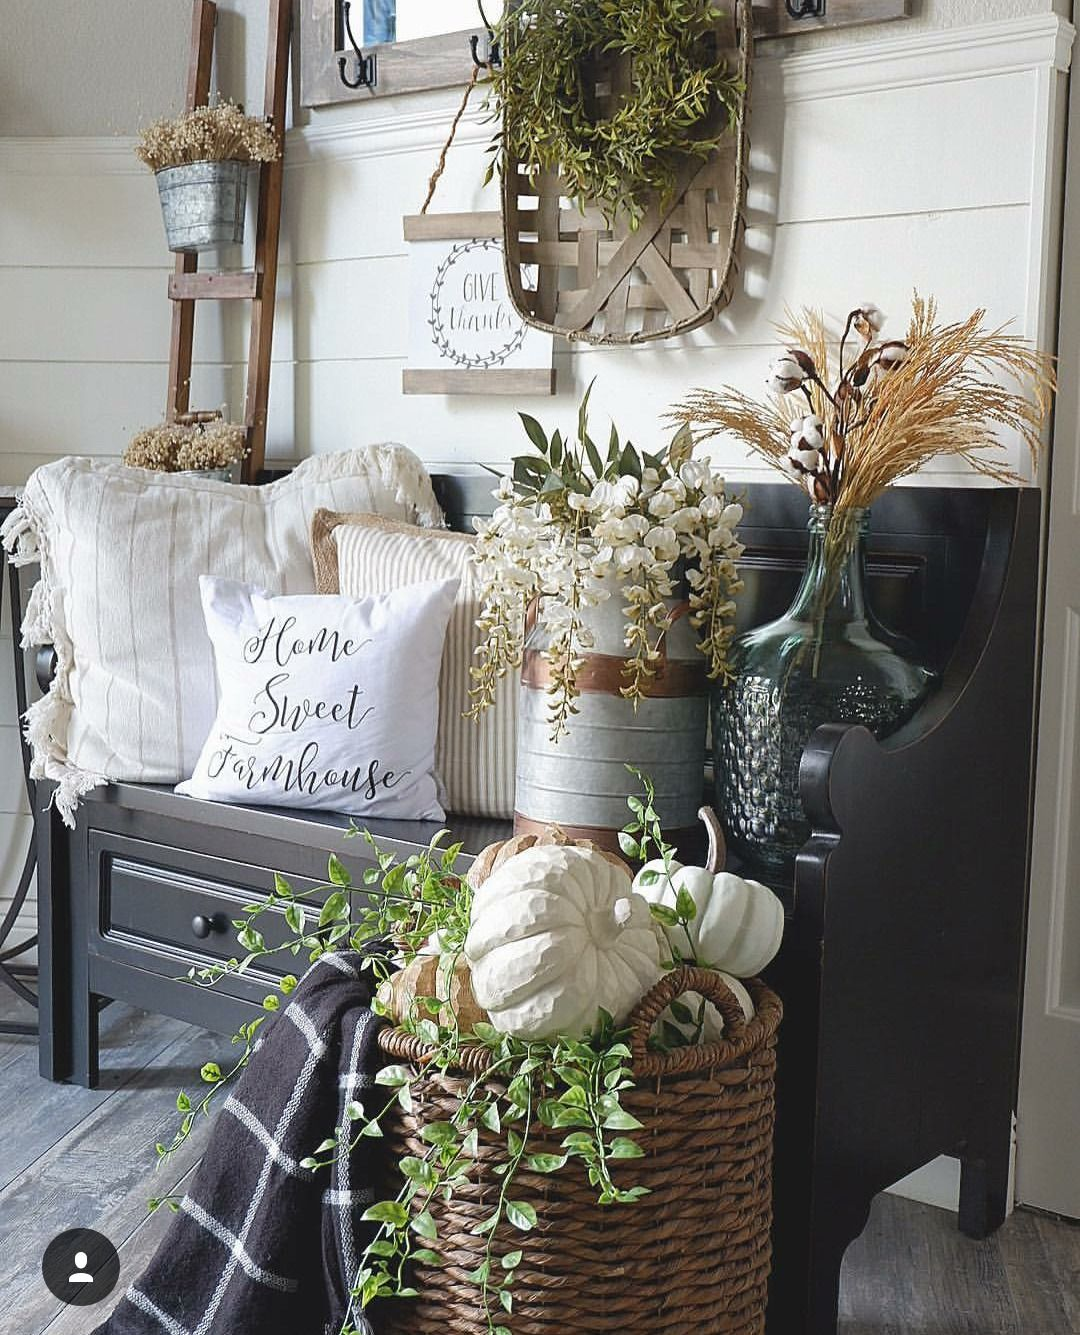 Inexpensive Home Decor Unique: Gorgeous Fall Decor That Stopped Me In My Scrollin' Tracks